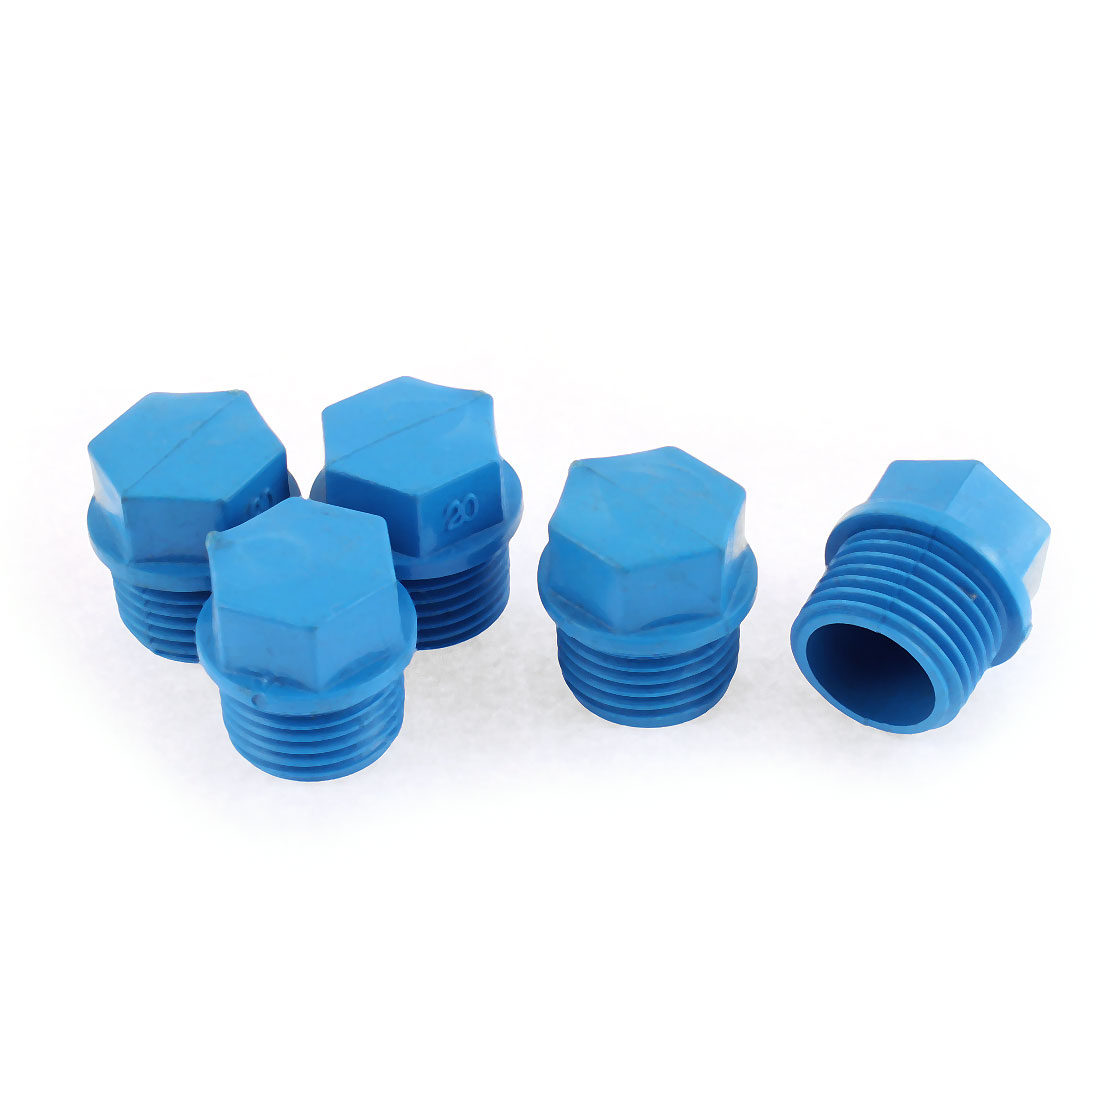 21mm Hex Head Dia 20mm Male Thread Water Pipe Connector 5PCS